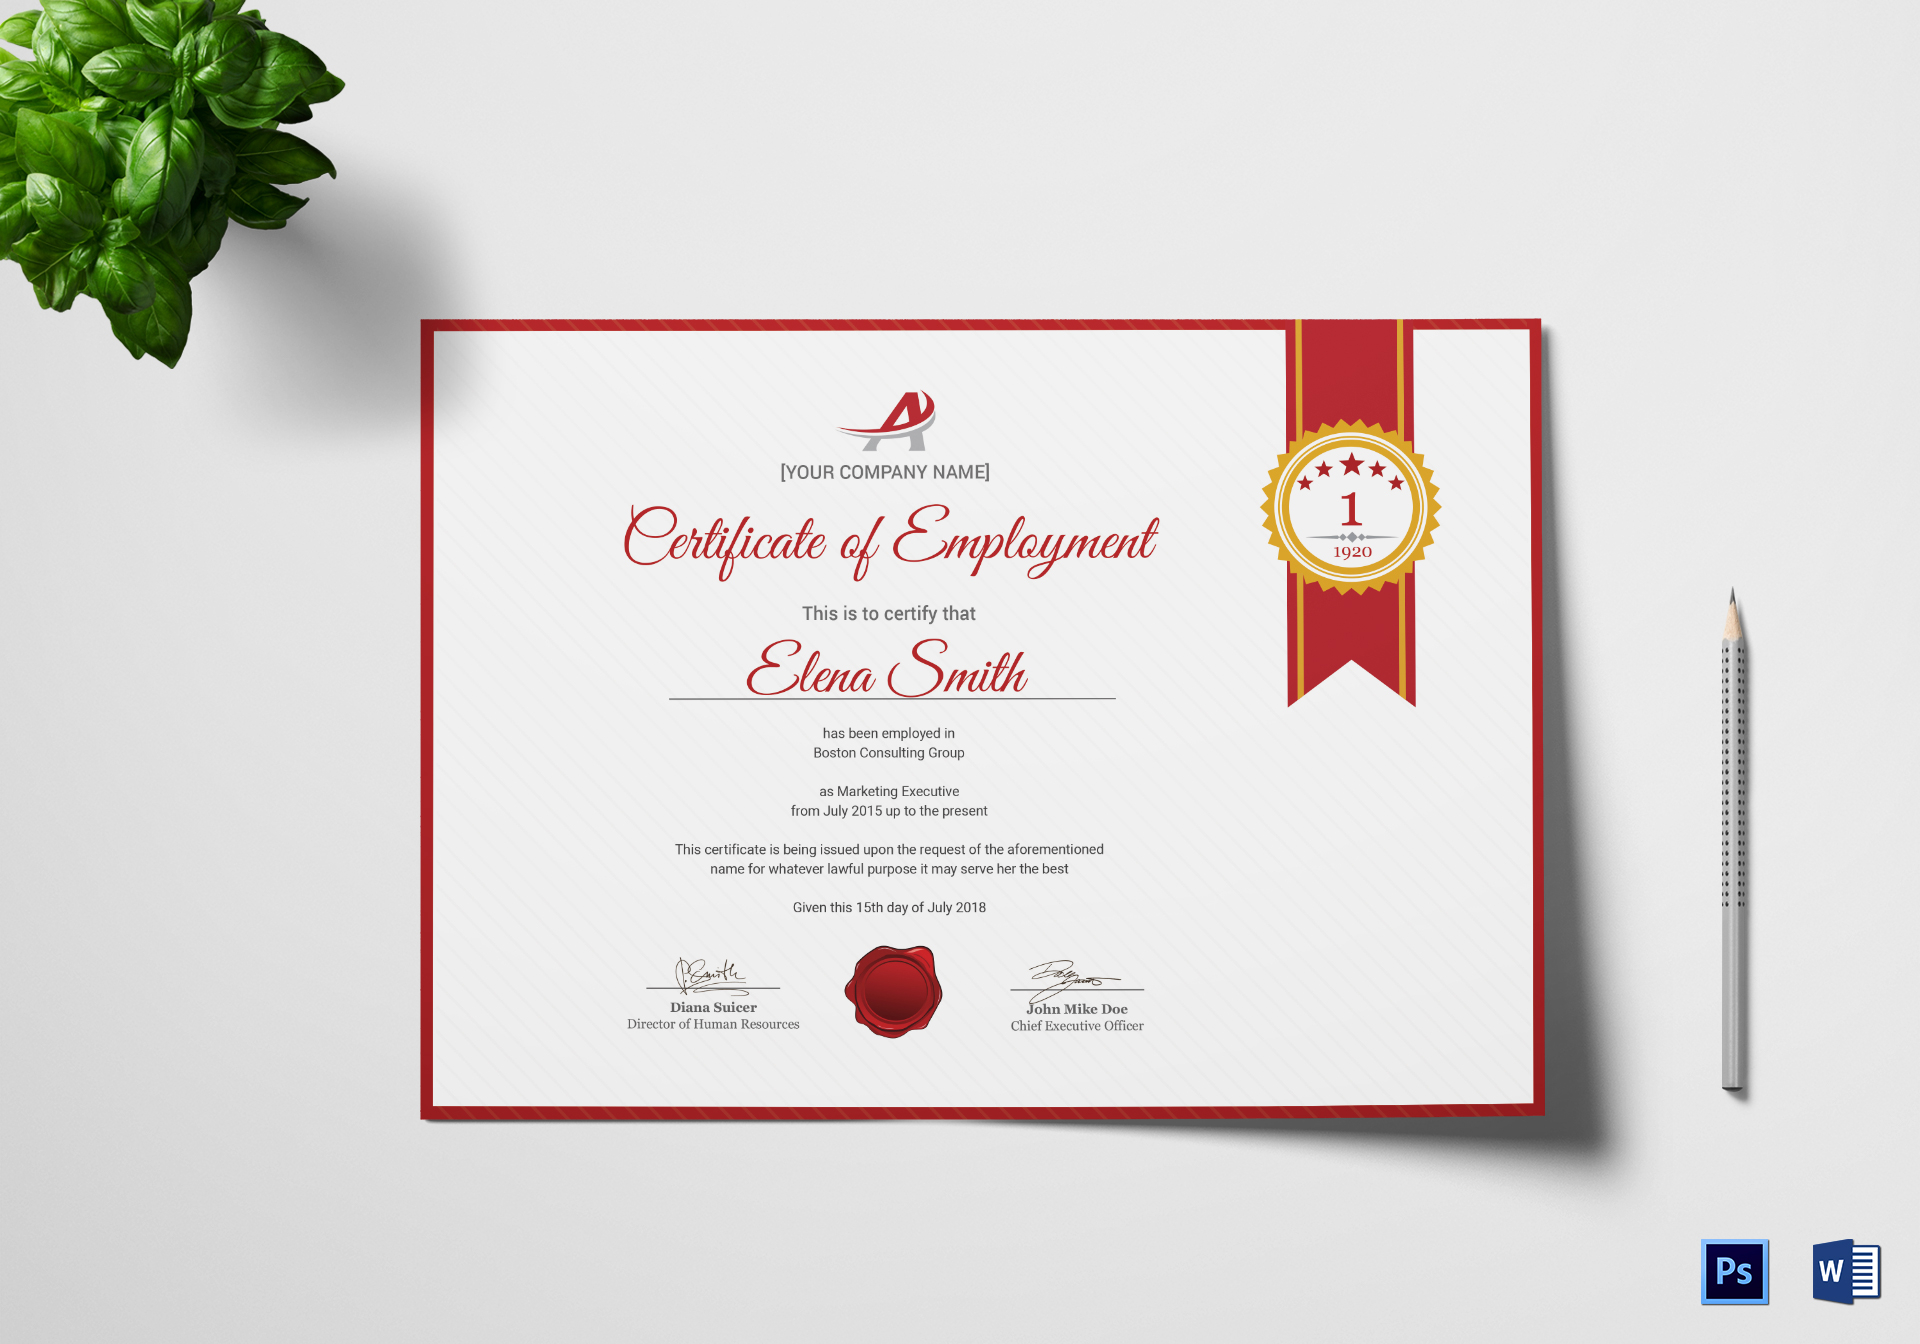 dynamic employment certificate design template in psd  word